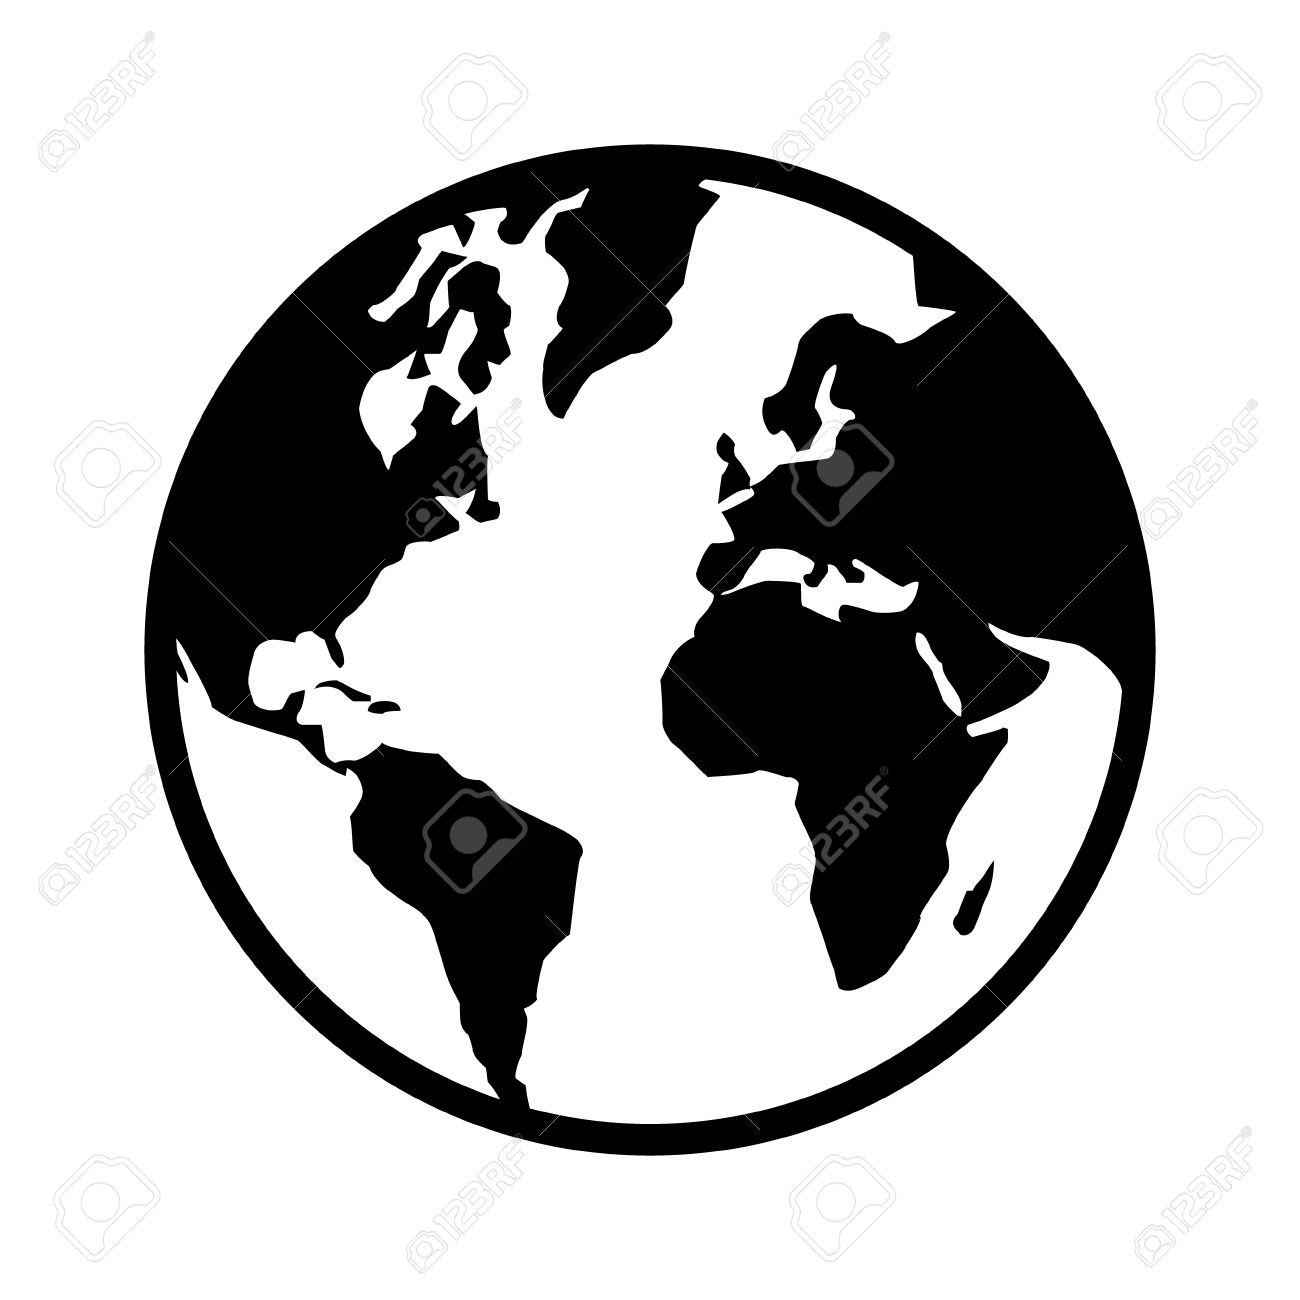 World map silhouette at getdrawings free for personal use 1300x1300 world map icon gumiabroncs Gallery